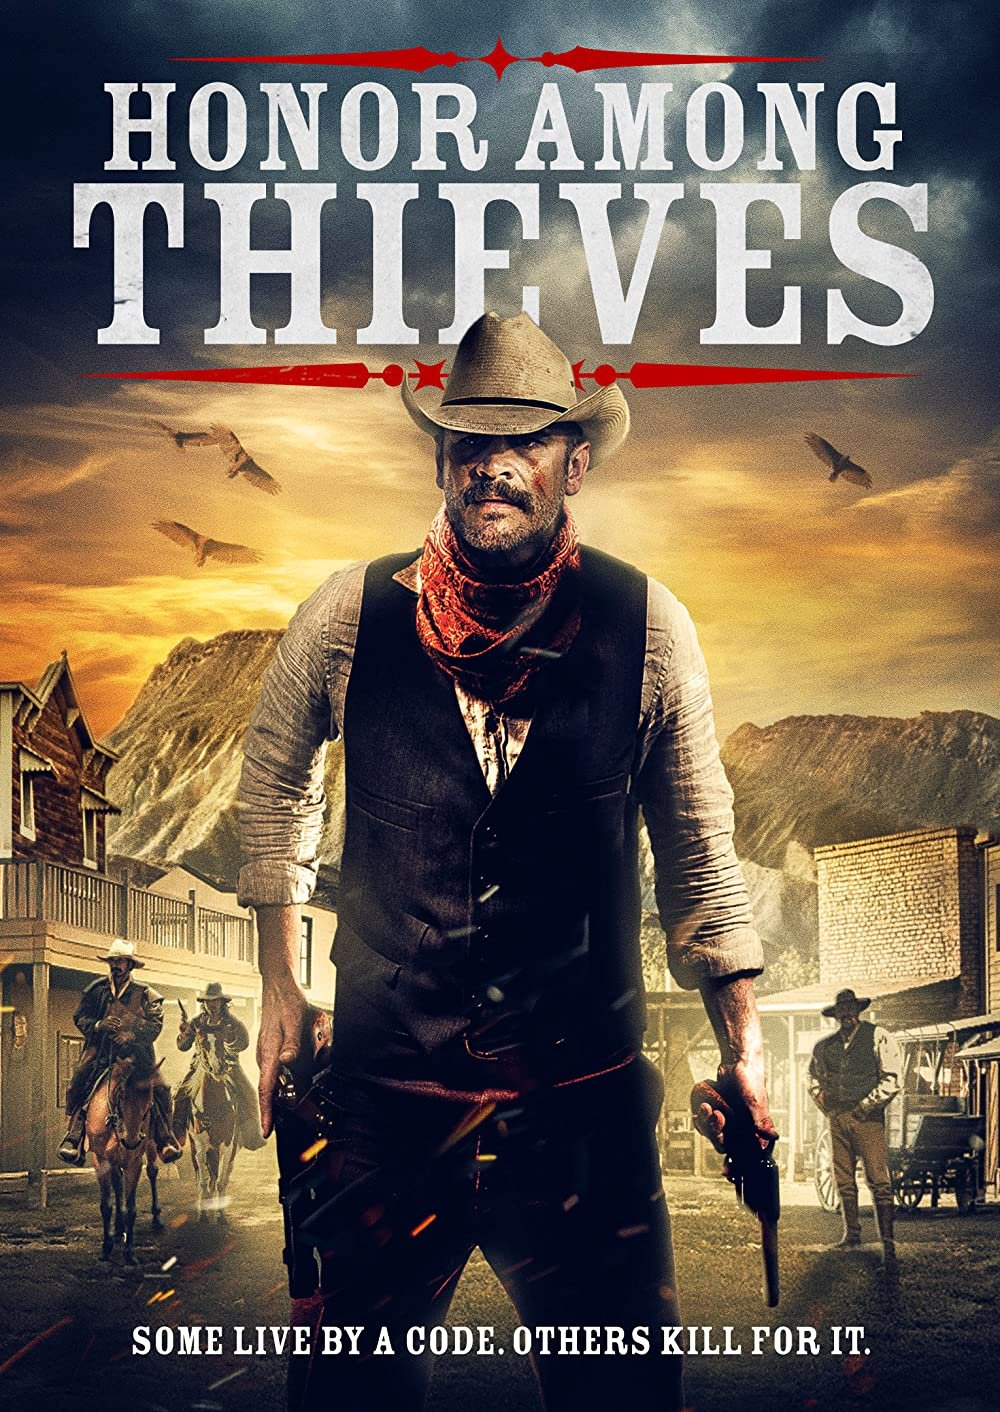 Honor Among Thieves poster image